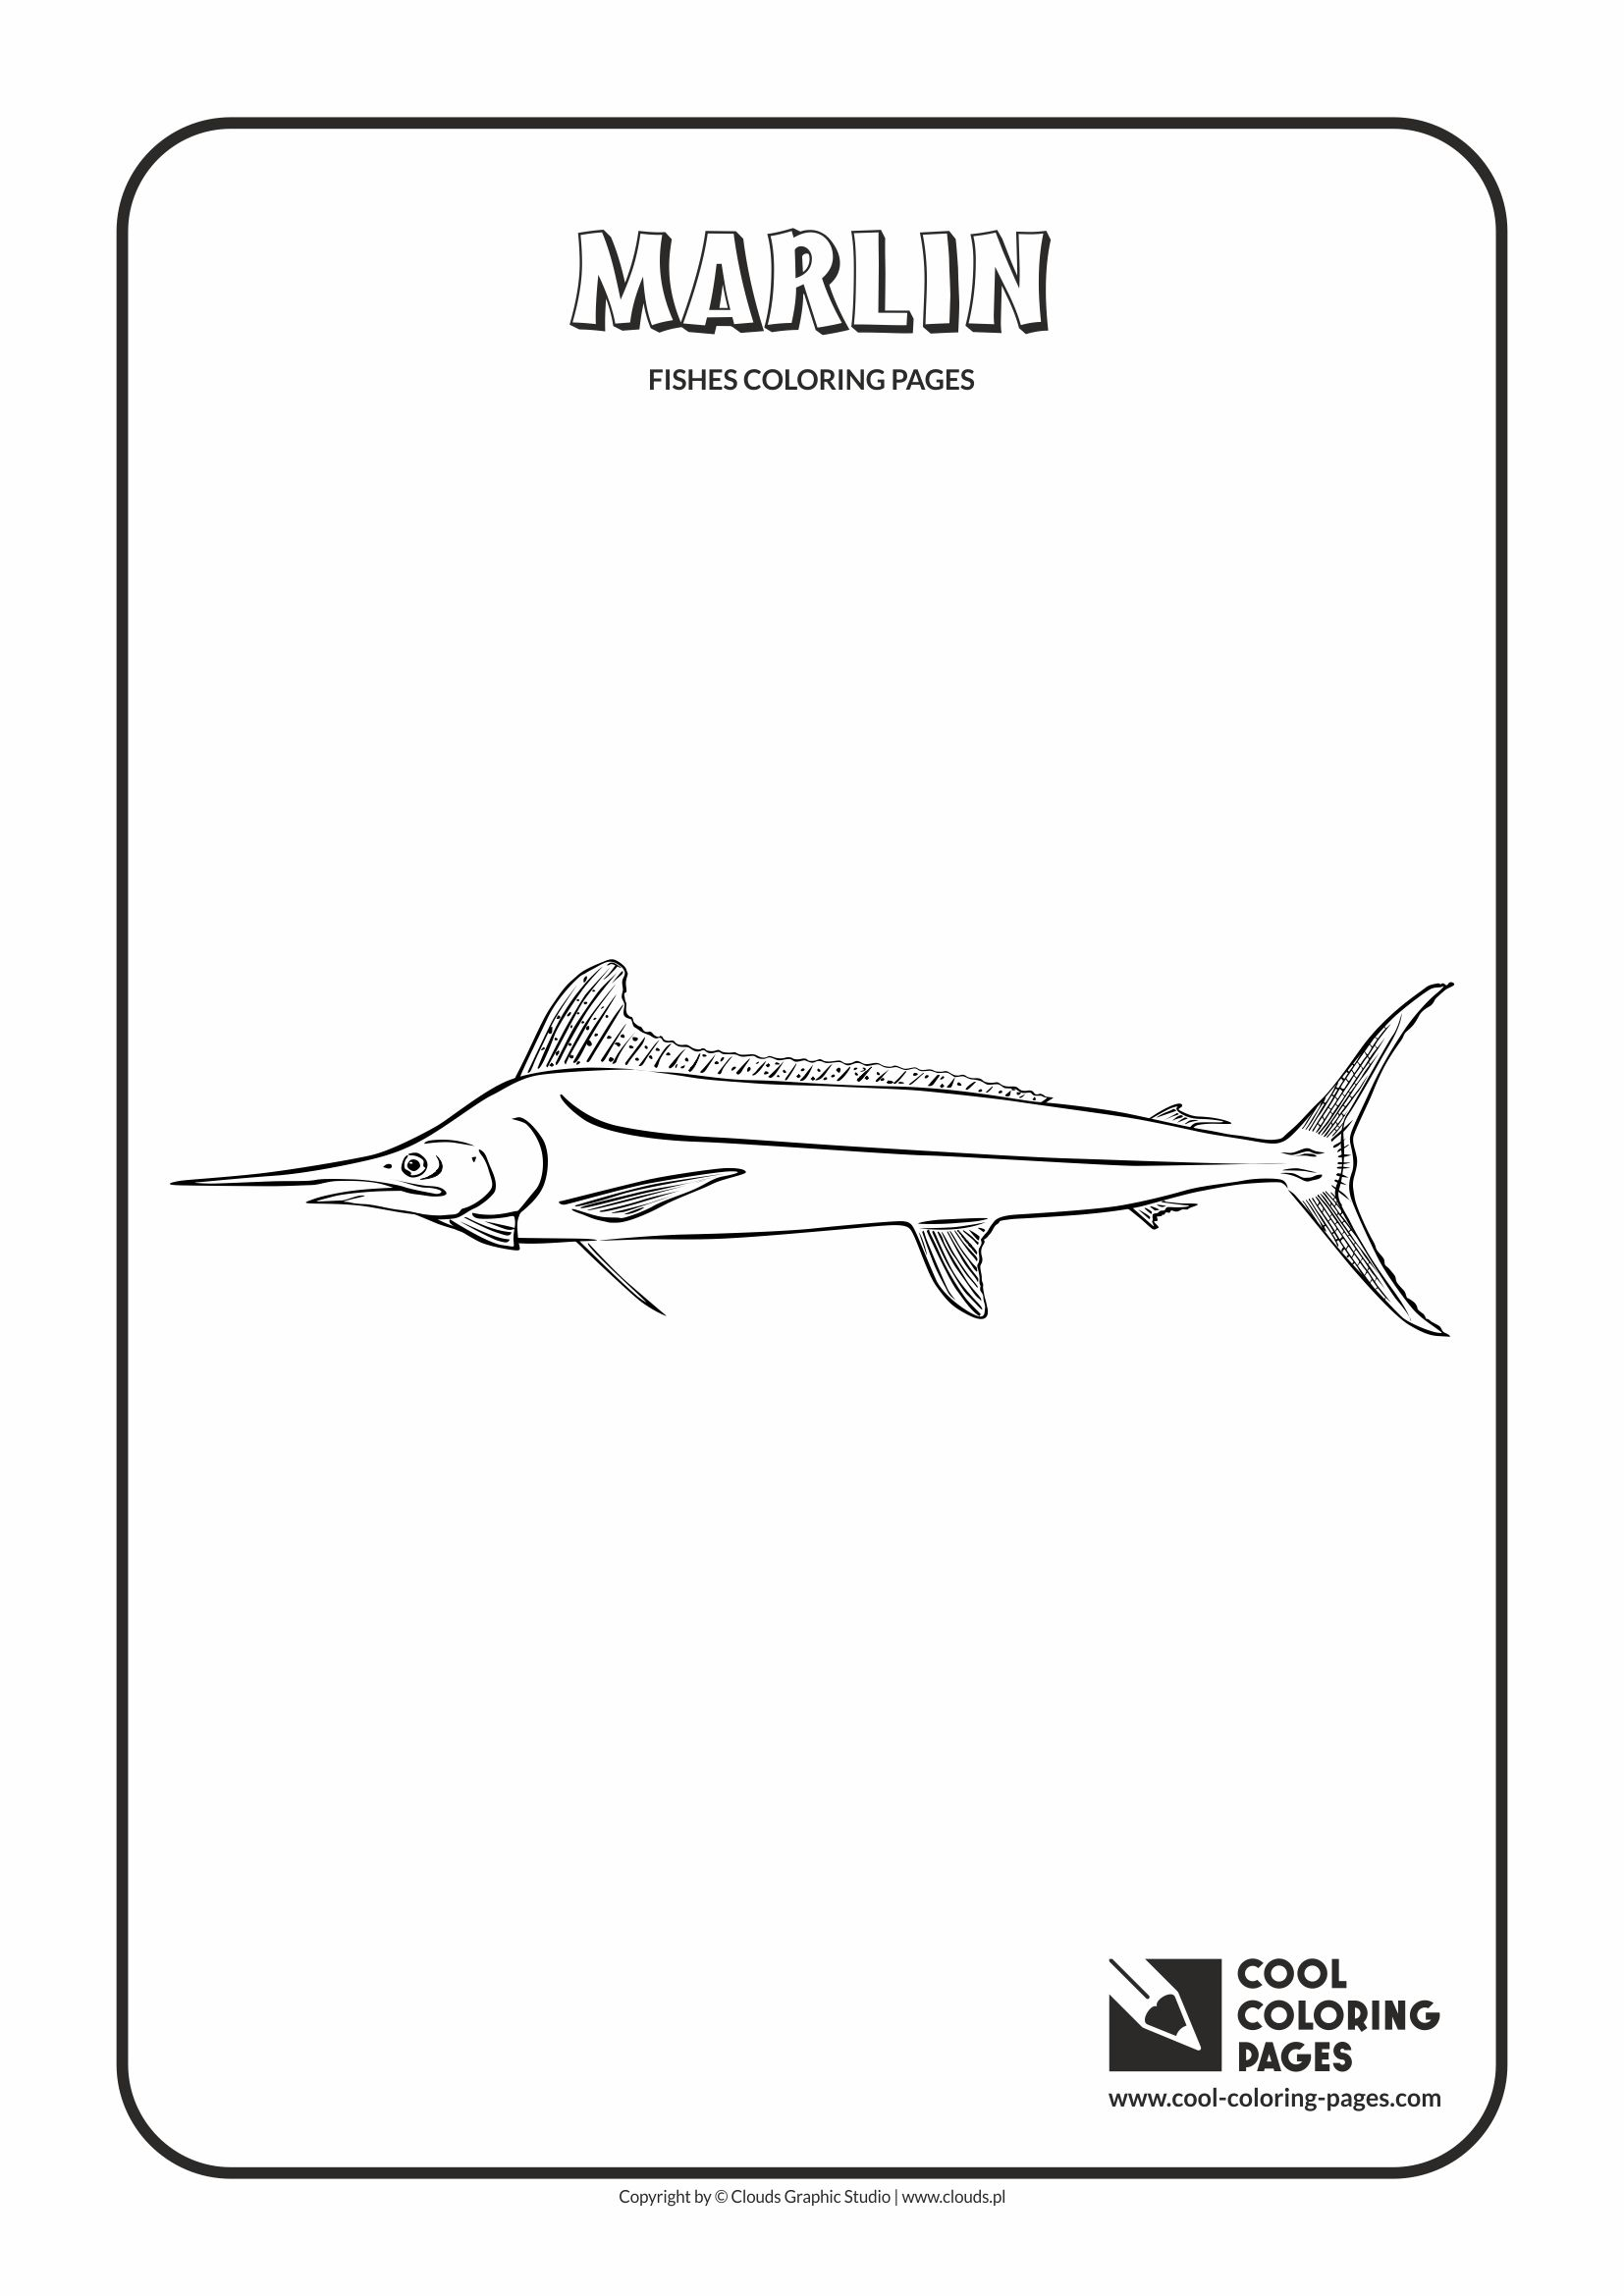 Cool Coloring Pages - Animals / Marlin / Coloring page with marlin